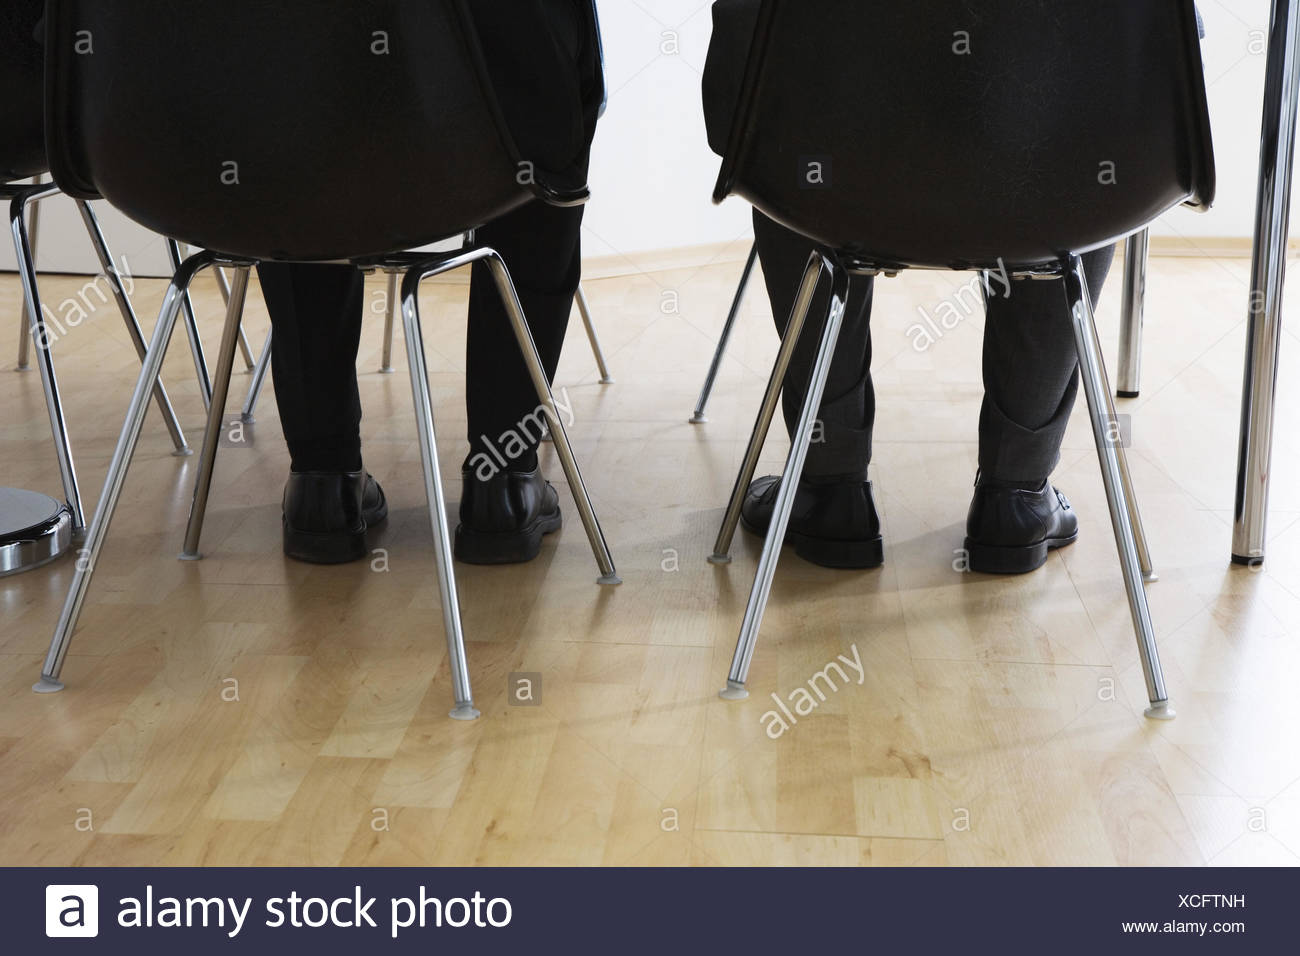 Men, detail, legs, chairs, sit,  Move opinion,   Participants business, office, attendant area, waiting rooms, application, applicants competitors two, - Stock Image